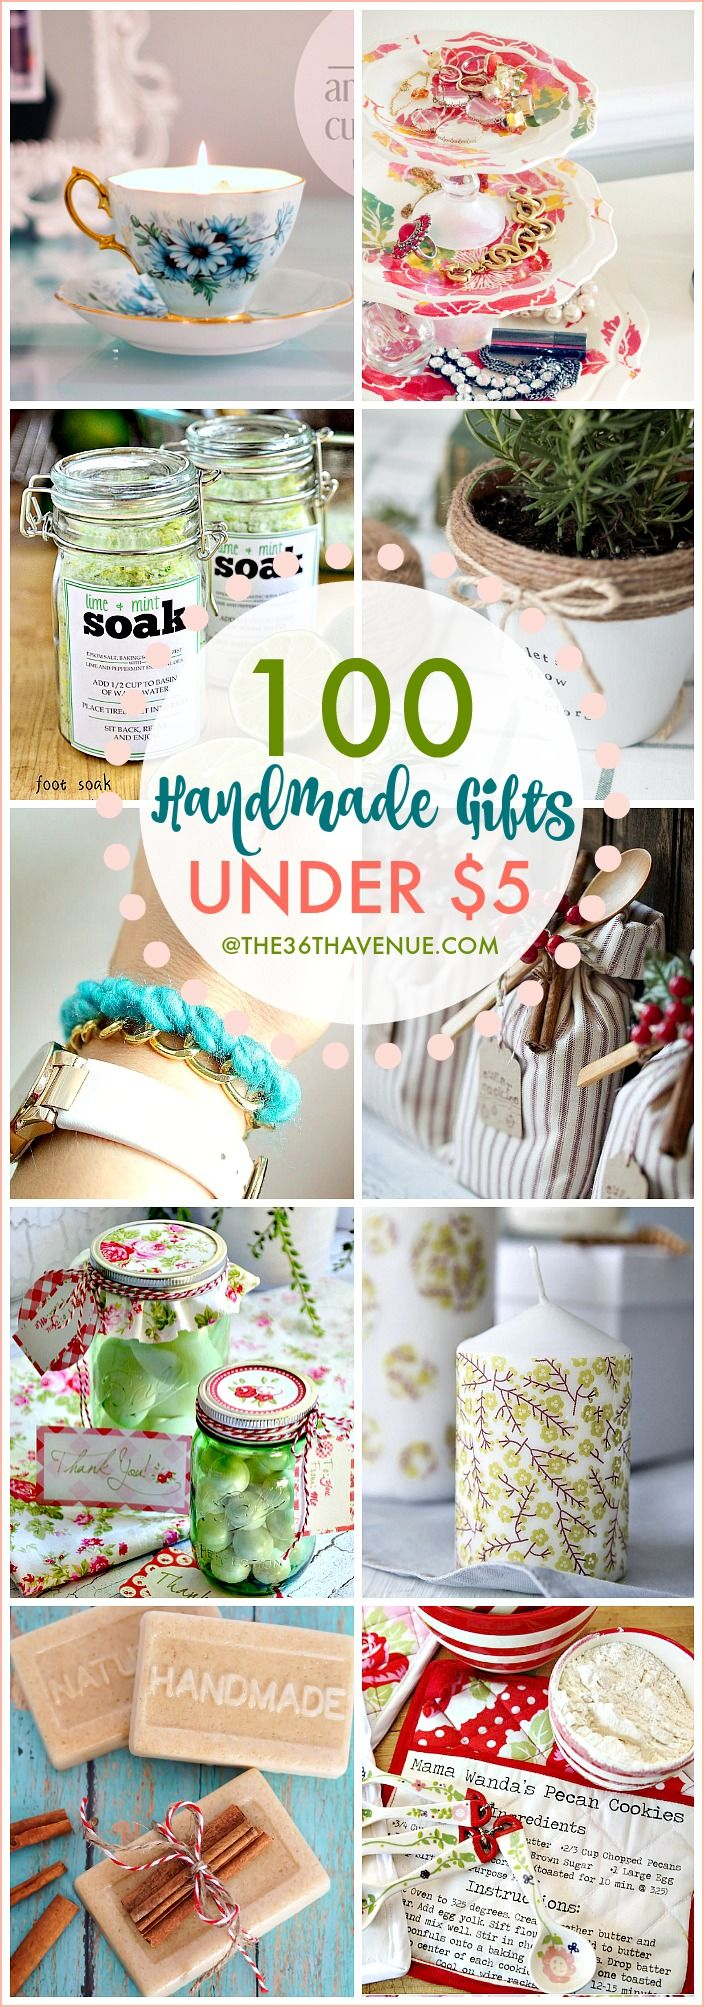 10 Handmade Gifts Under $5 - (the36thavenue)